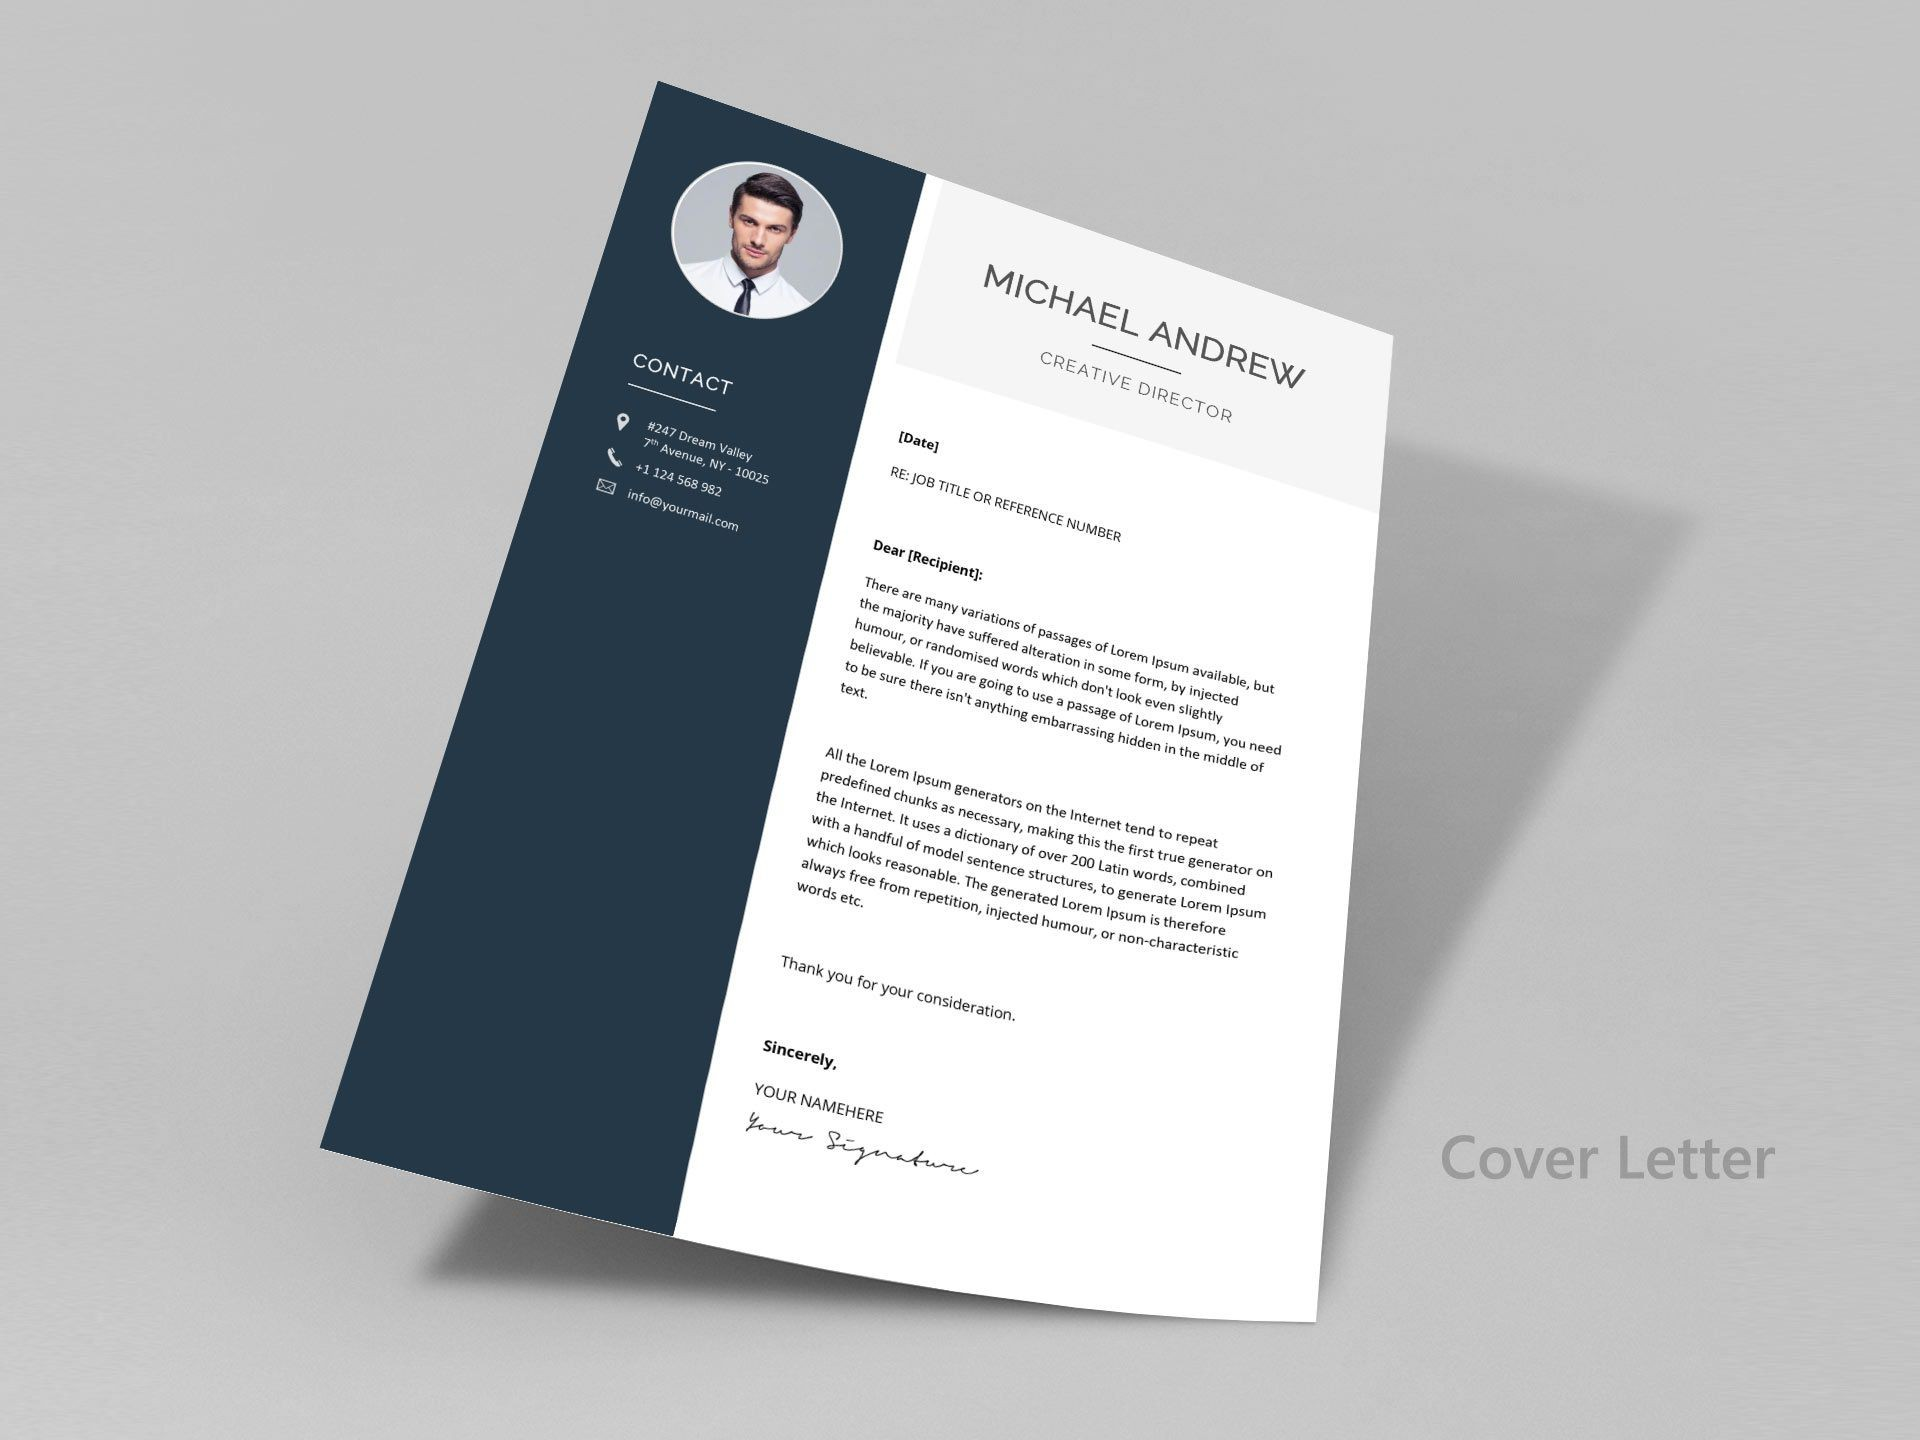 007 Awful Modern Cv Template Word Free Download 2019 High Definition 1920